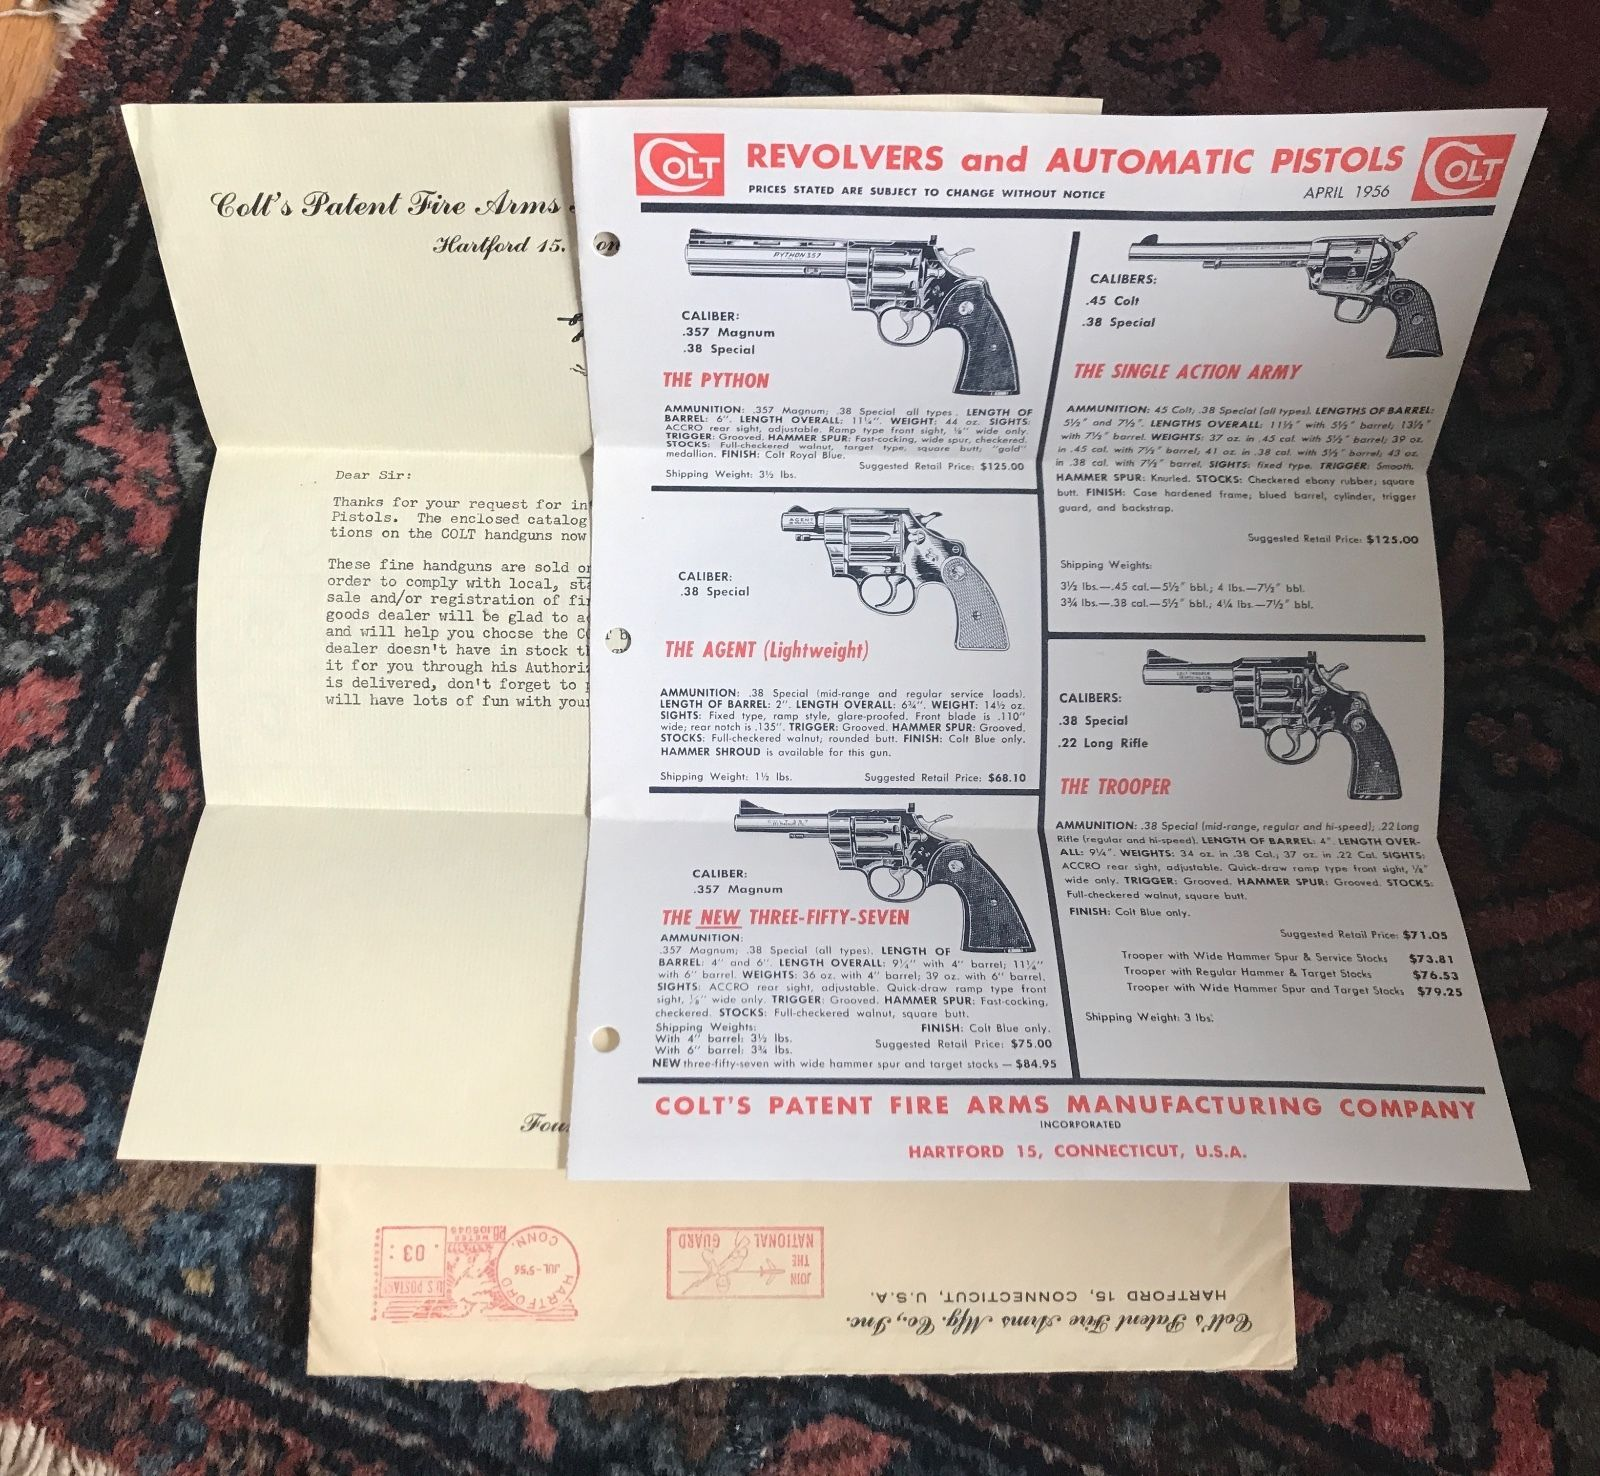 1955 Signed Colt Letter And Hand Gun Brochure 17 Firearms Kits 1911 Pistols Etc